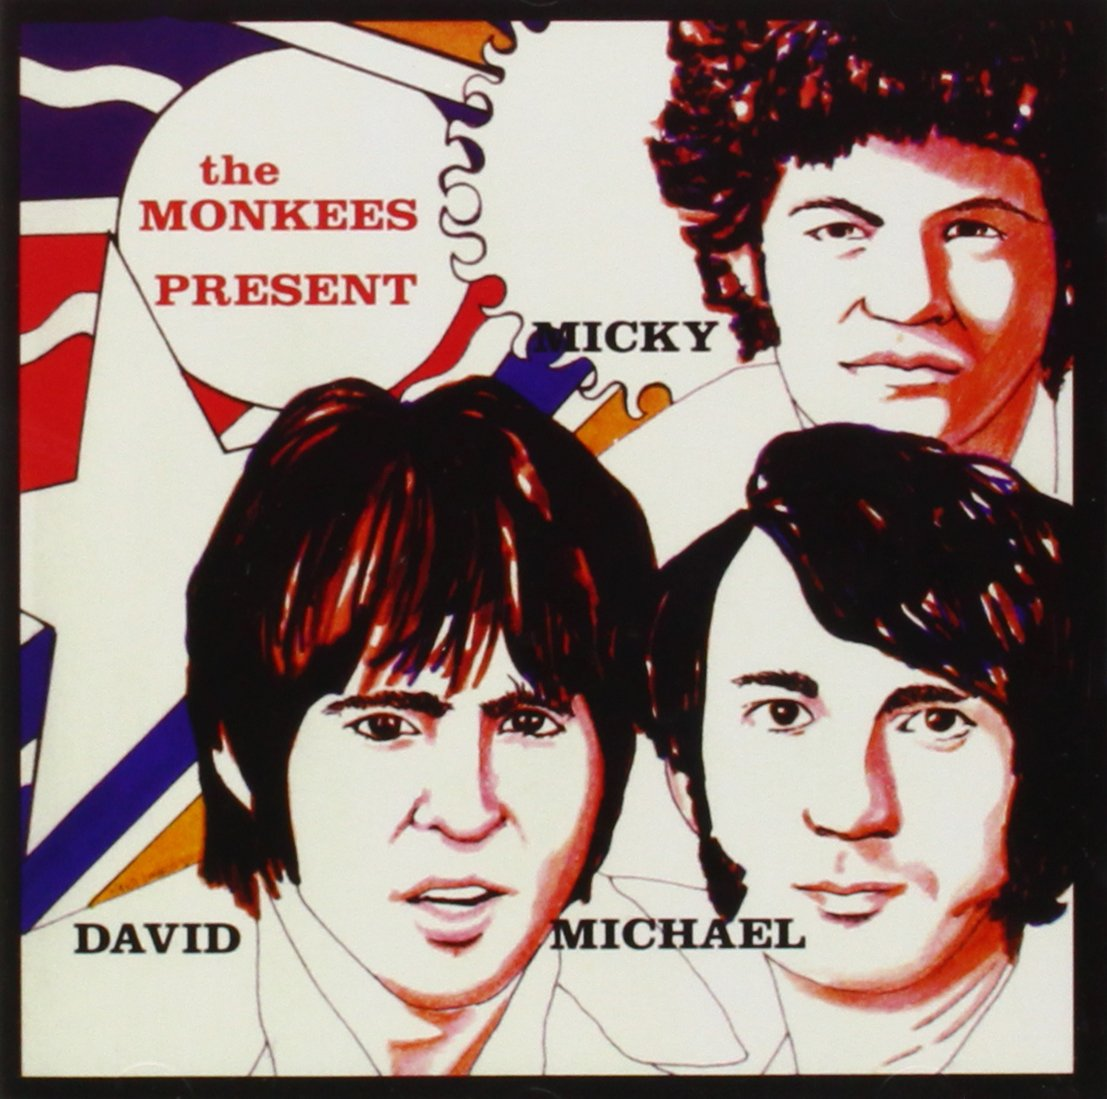 The Monkees Present, The Monkees